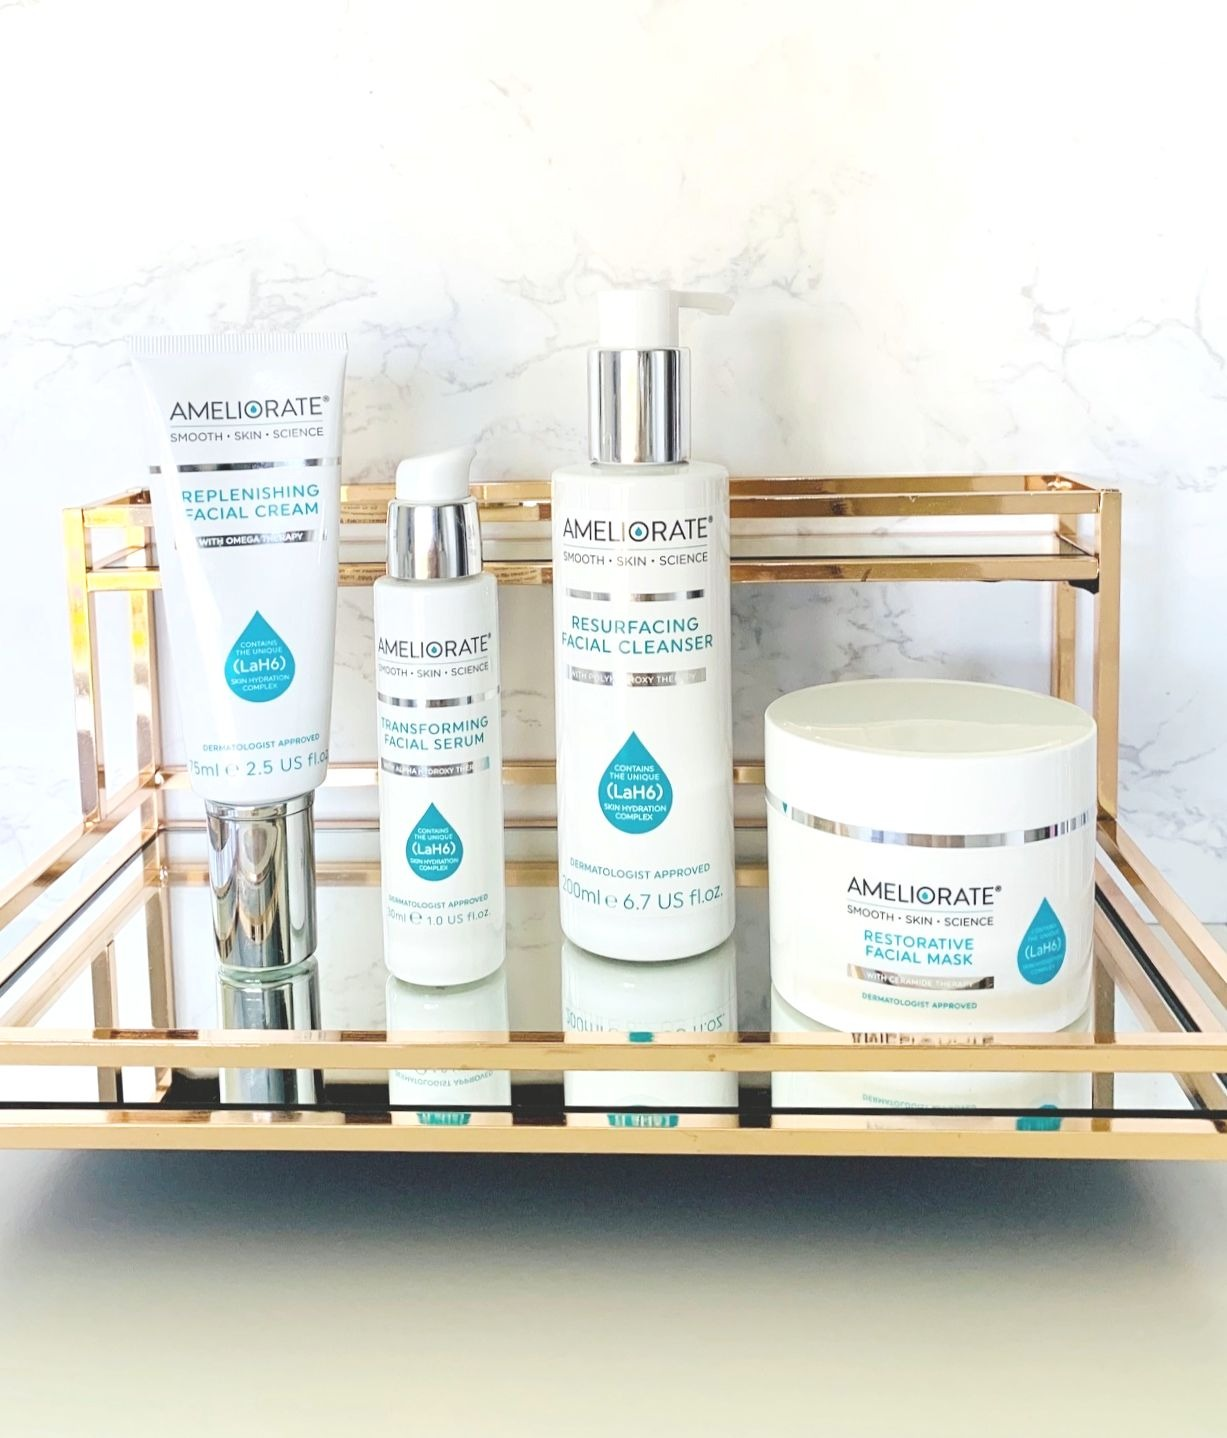 Ameliorate Skincare range review